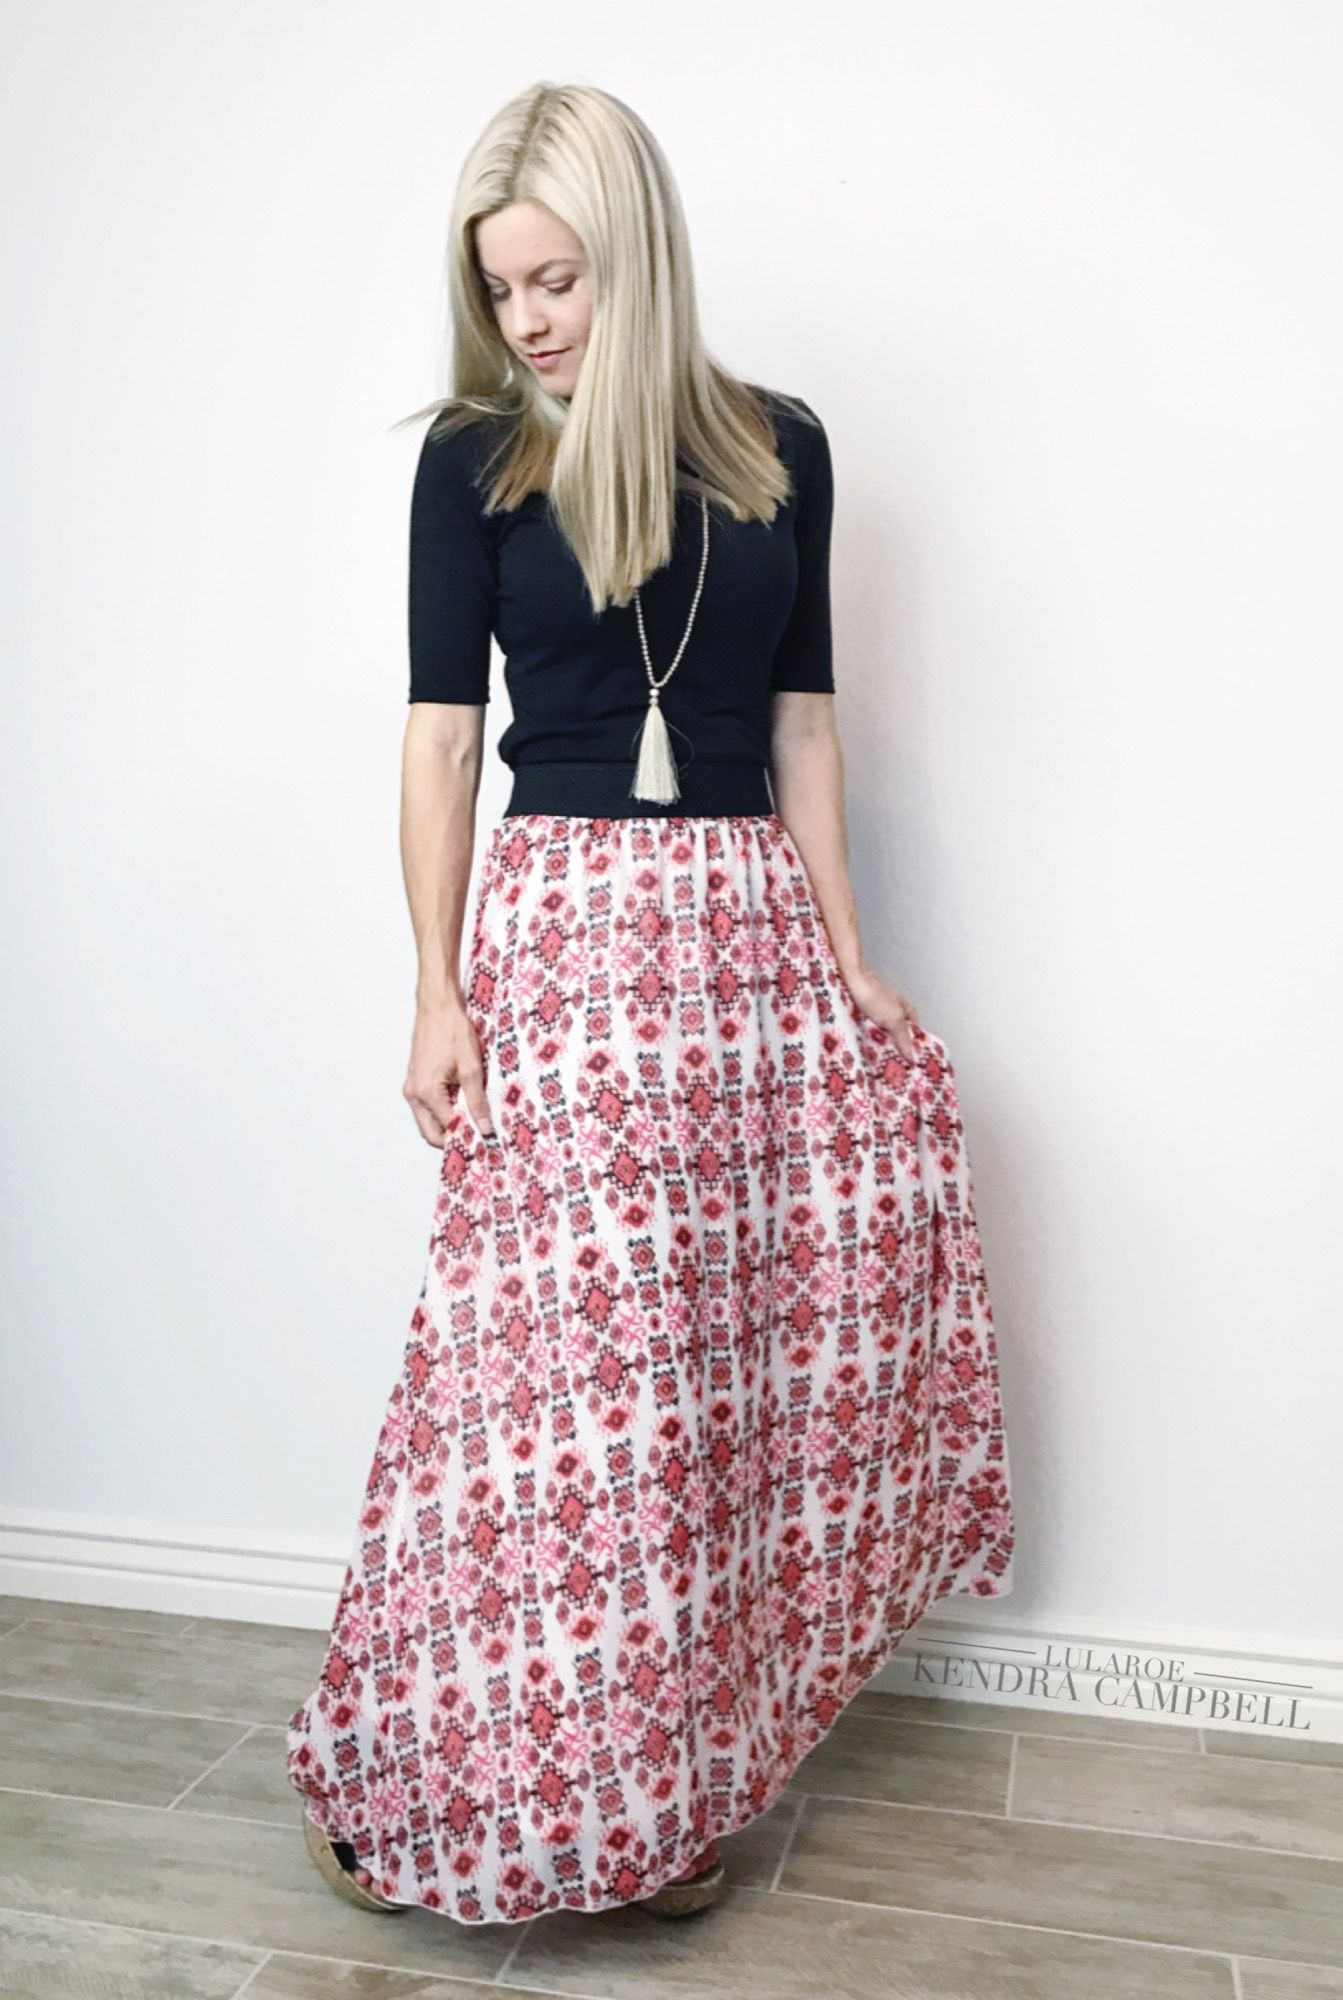 My Favorite LuLaRoe Lucy Skirt Paired With A Solid Black Julia Dress Fits